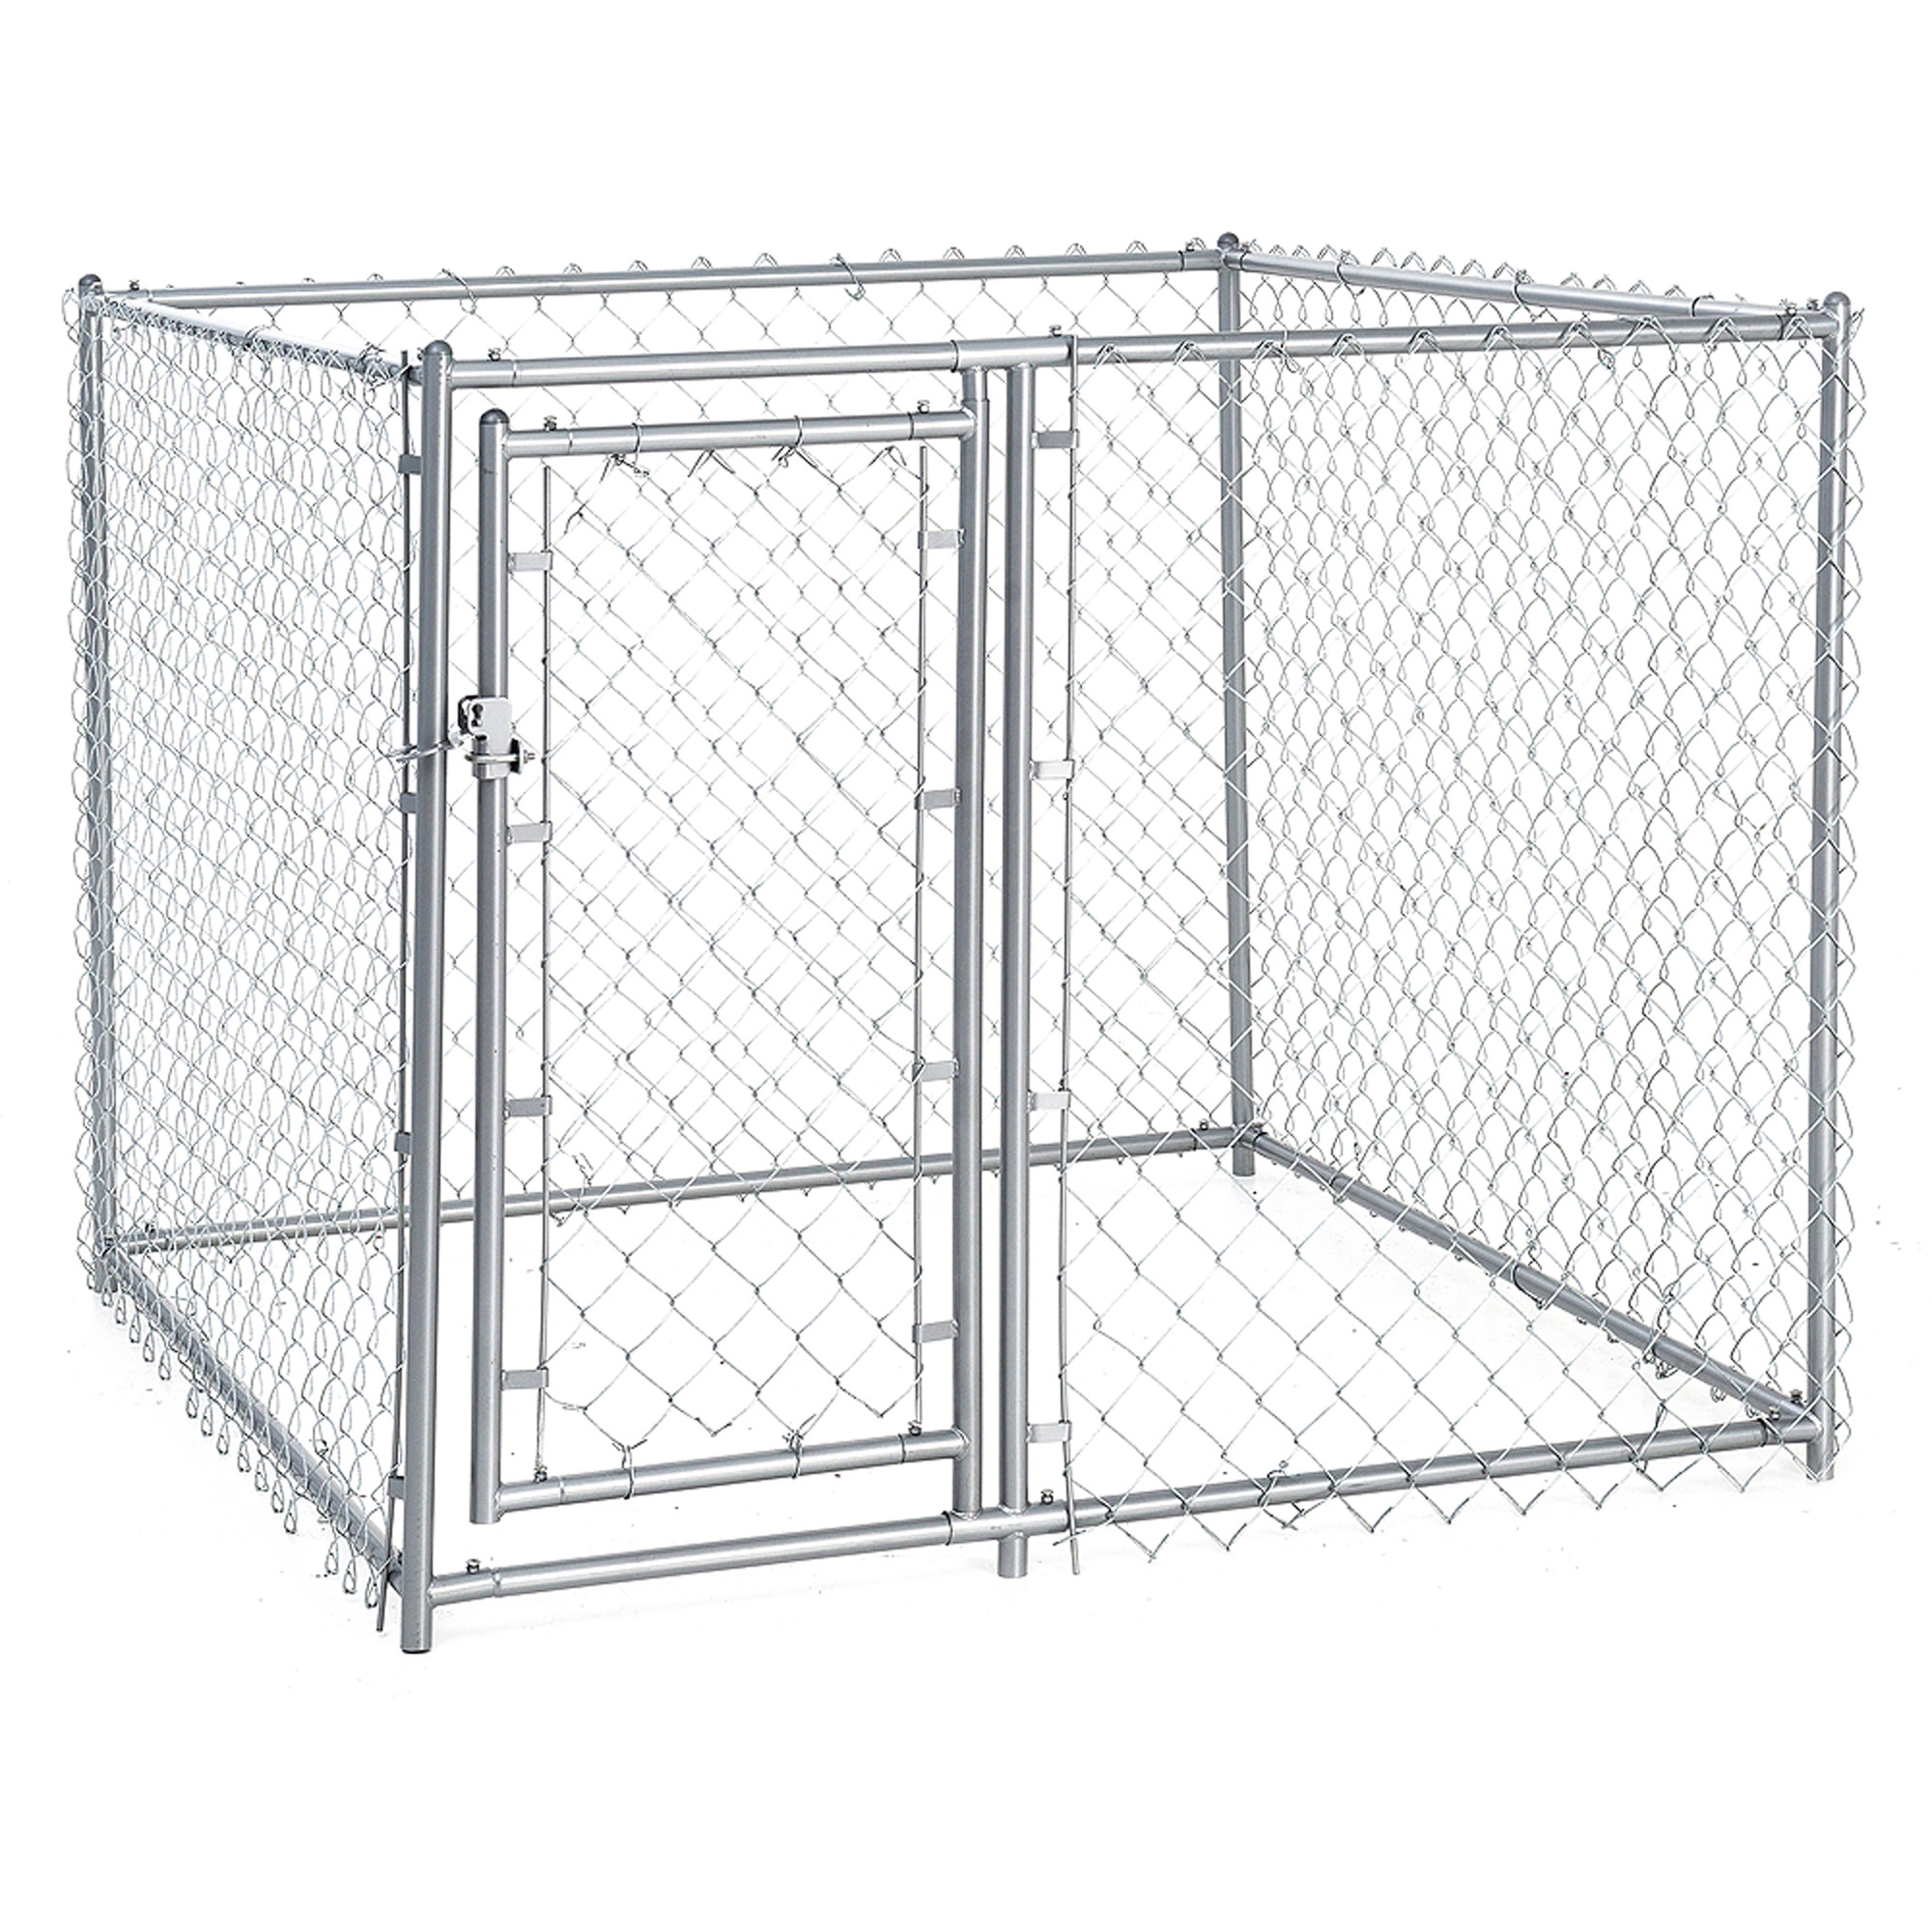 Lucky Dog 4'H x 5'W x 5'L Galvanized Chain Link, Modular PC'd Frame